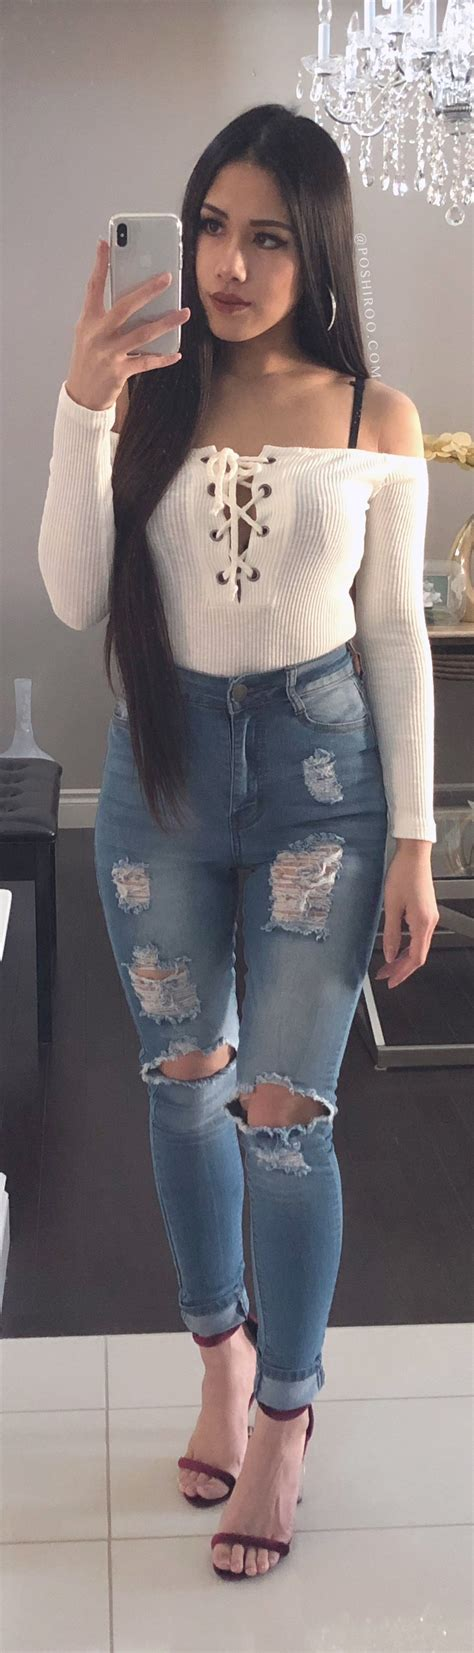 Baddie Outfit Ideas for Every Casual Party | Pinterest | Instagram baddie Baddie and Swag